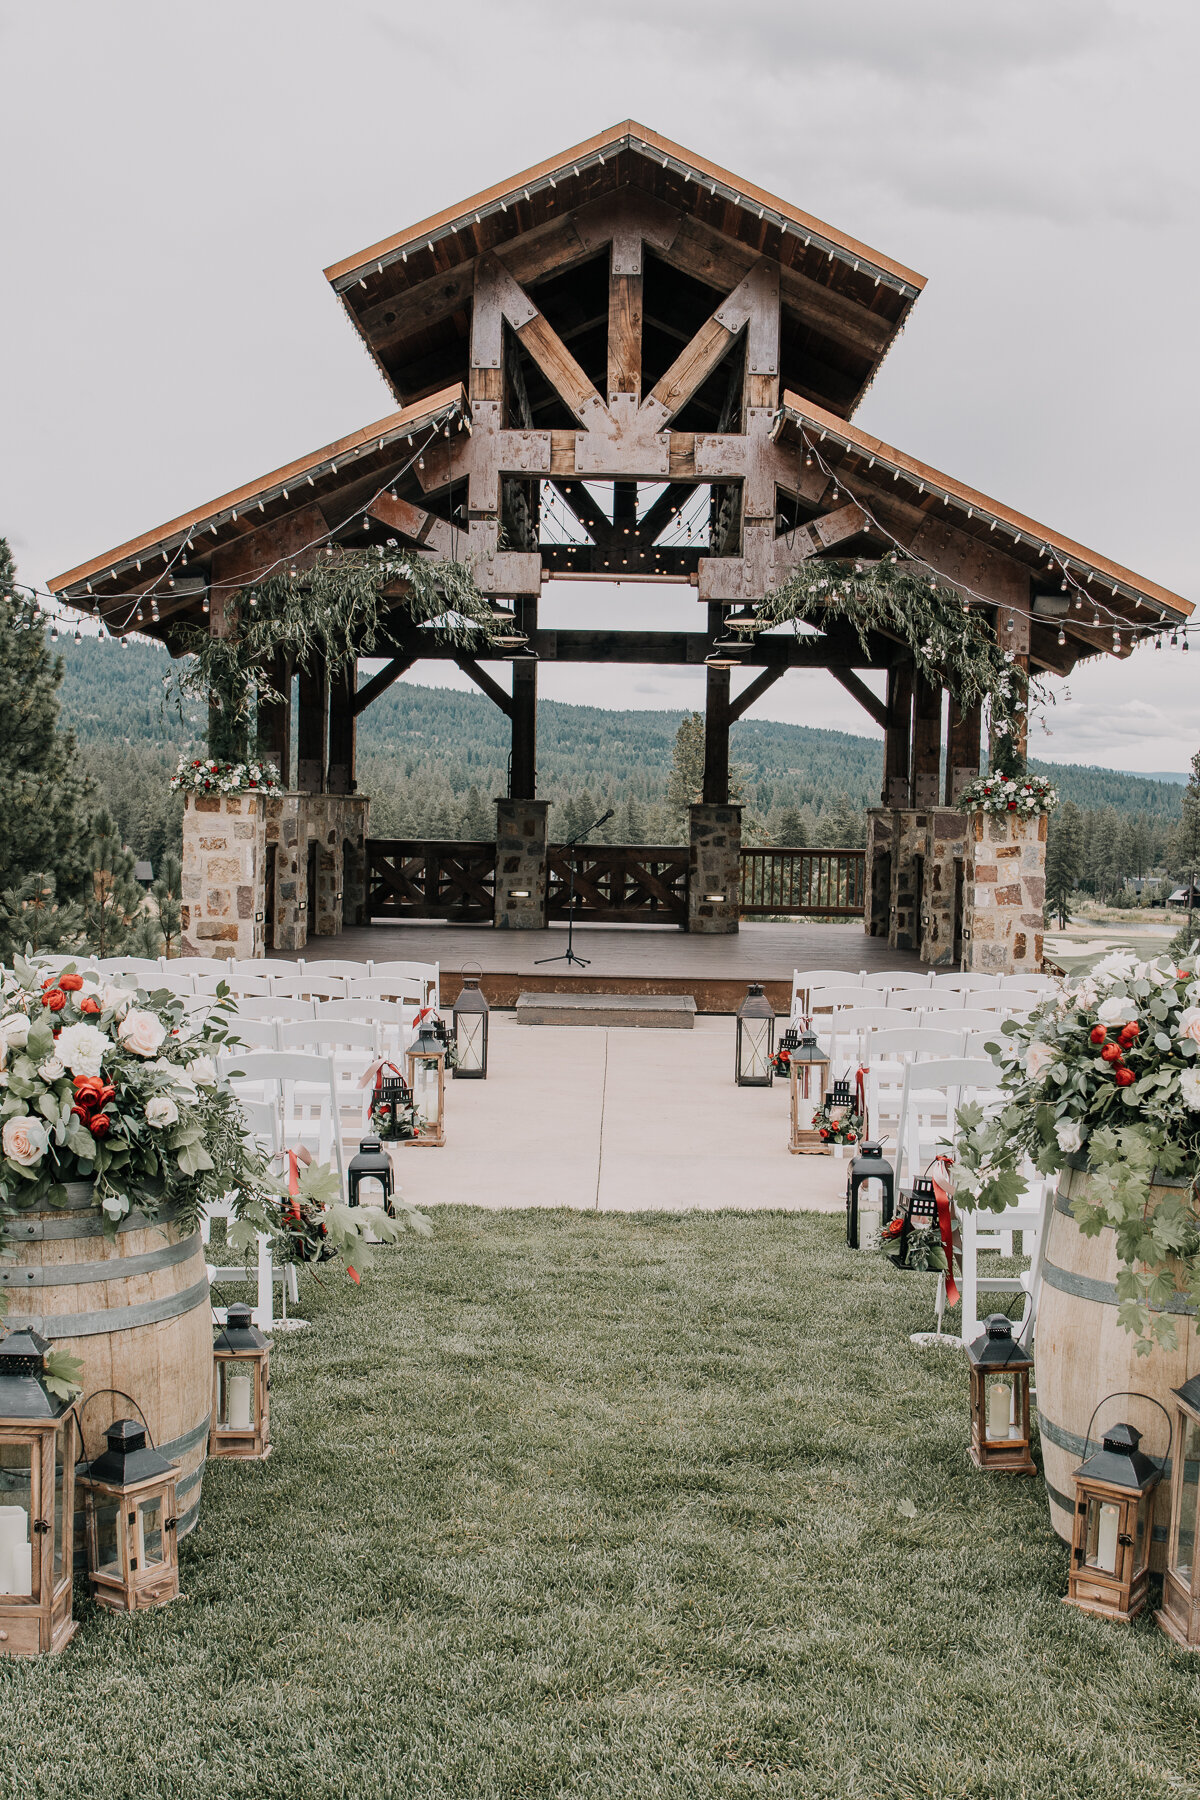 0740Swiftwater Cellars Wedding_Cle Elum Wedding_Montana Wedding Photographer_Kat & Kyle_Video_September 15, 2018-10.jpg